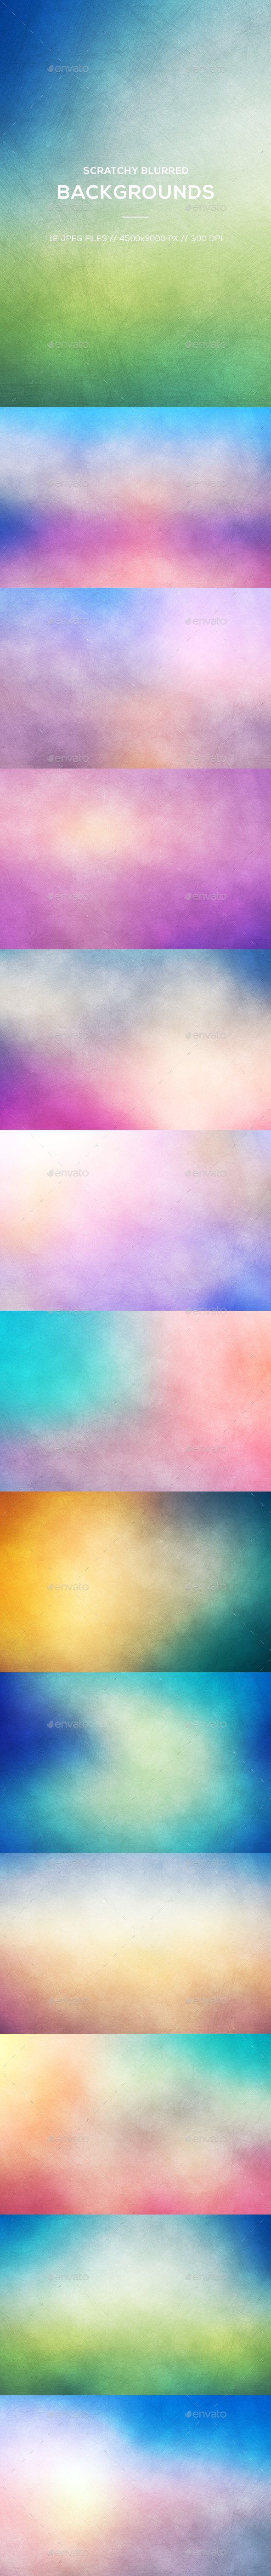 Scratchy Blurred Backgrounds - Abstract Backgrounds